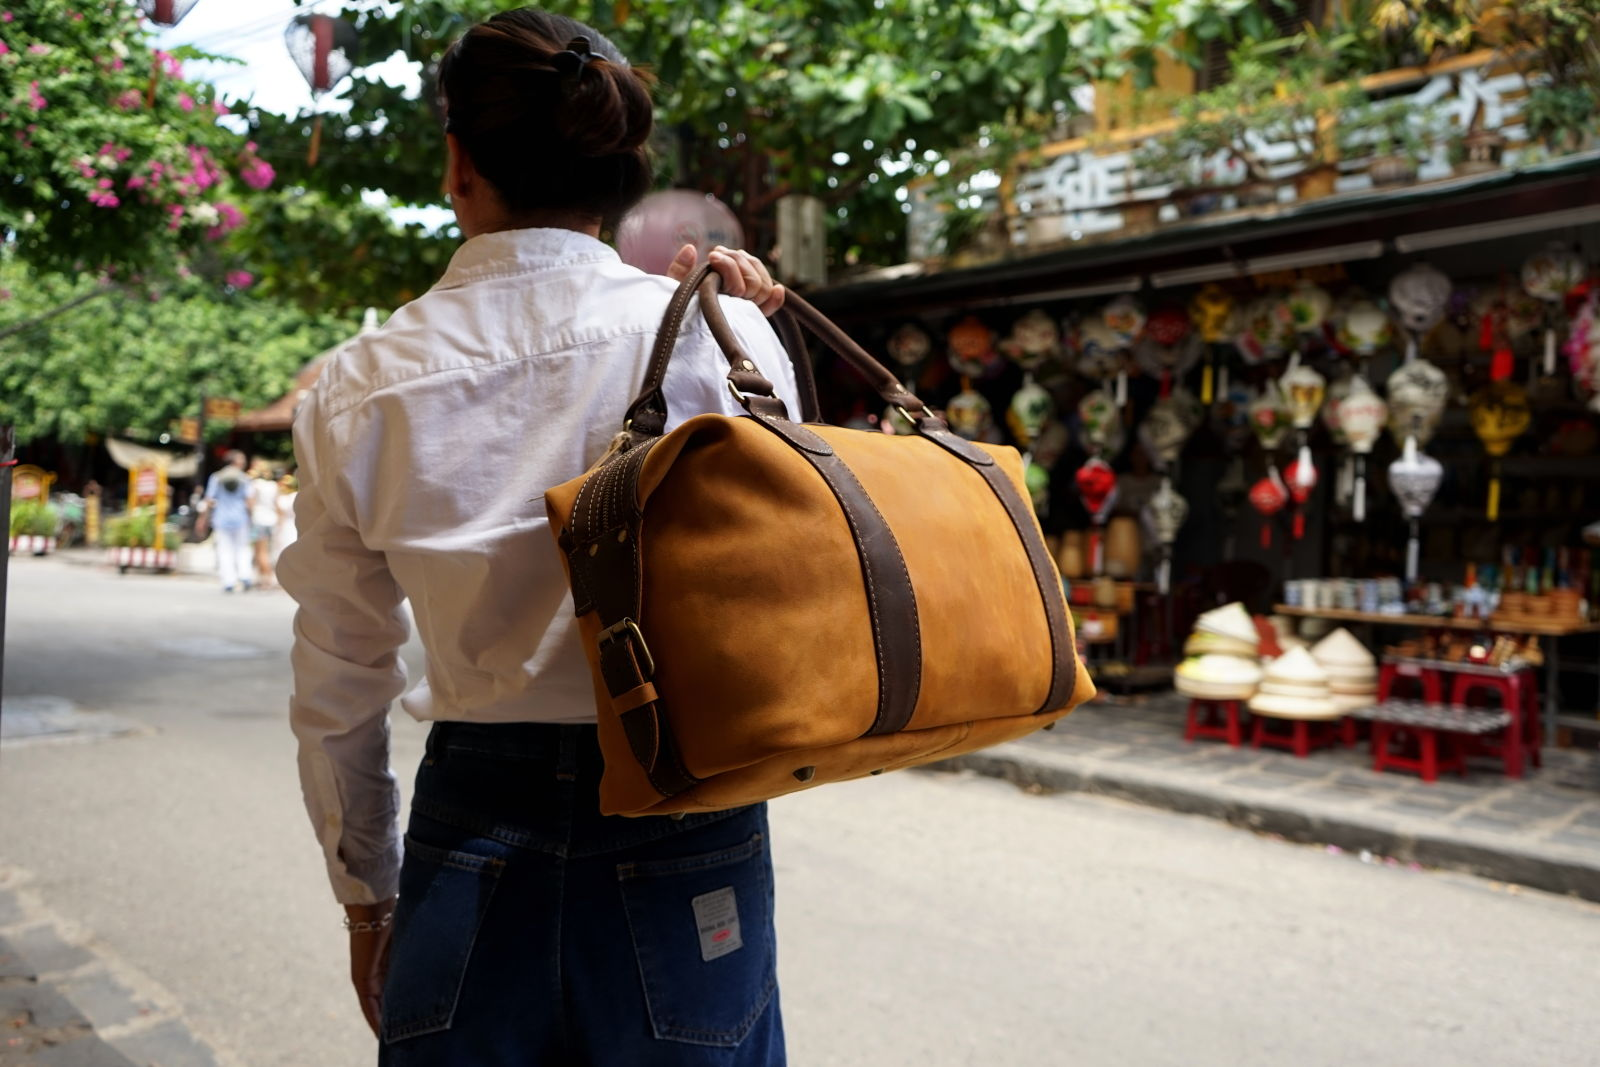 Hoi An Real Leather - Da Bao Real Leather: Small travel bag for a weekend away. Made of natural brown buffalo leather. For men and women.